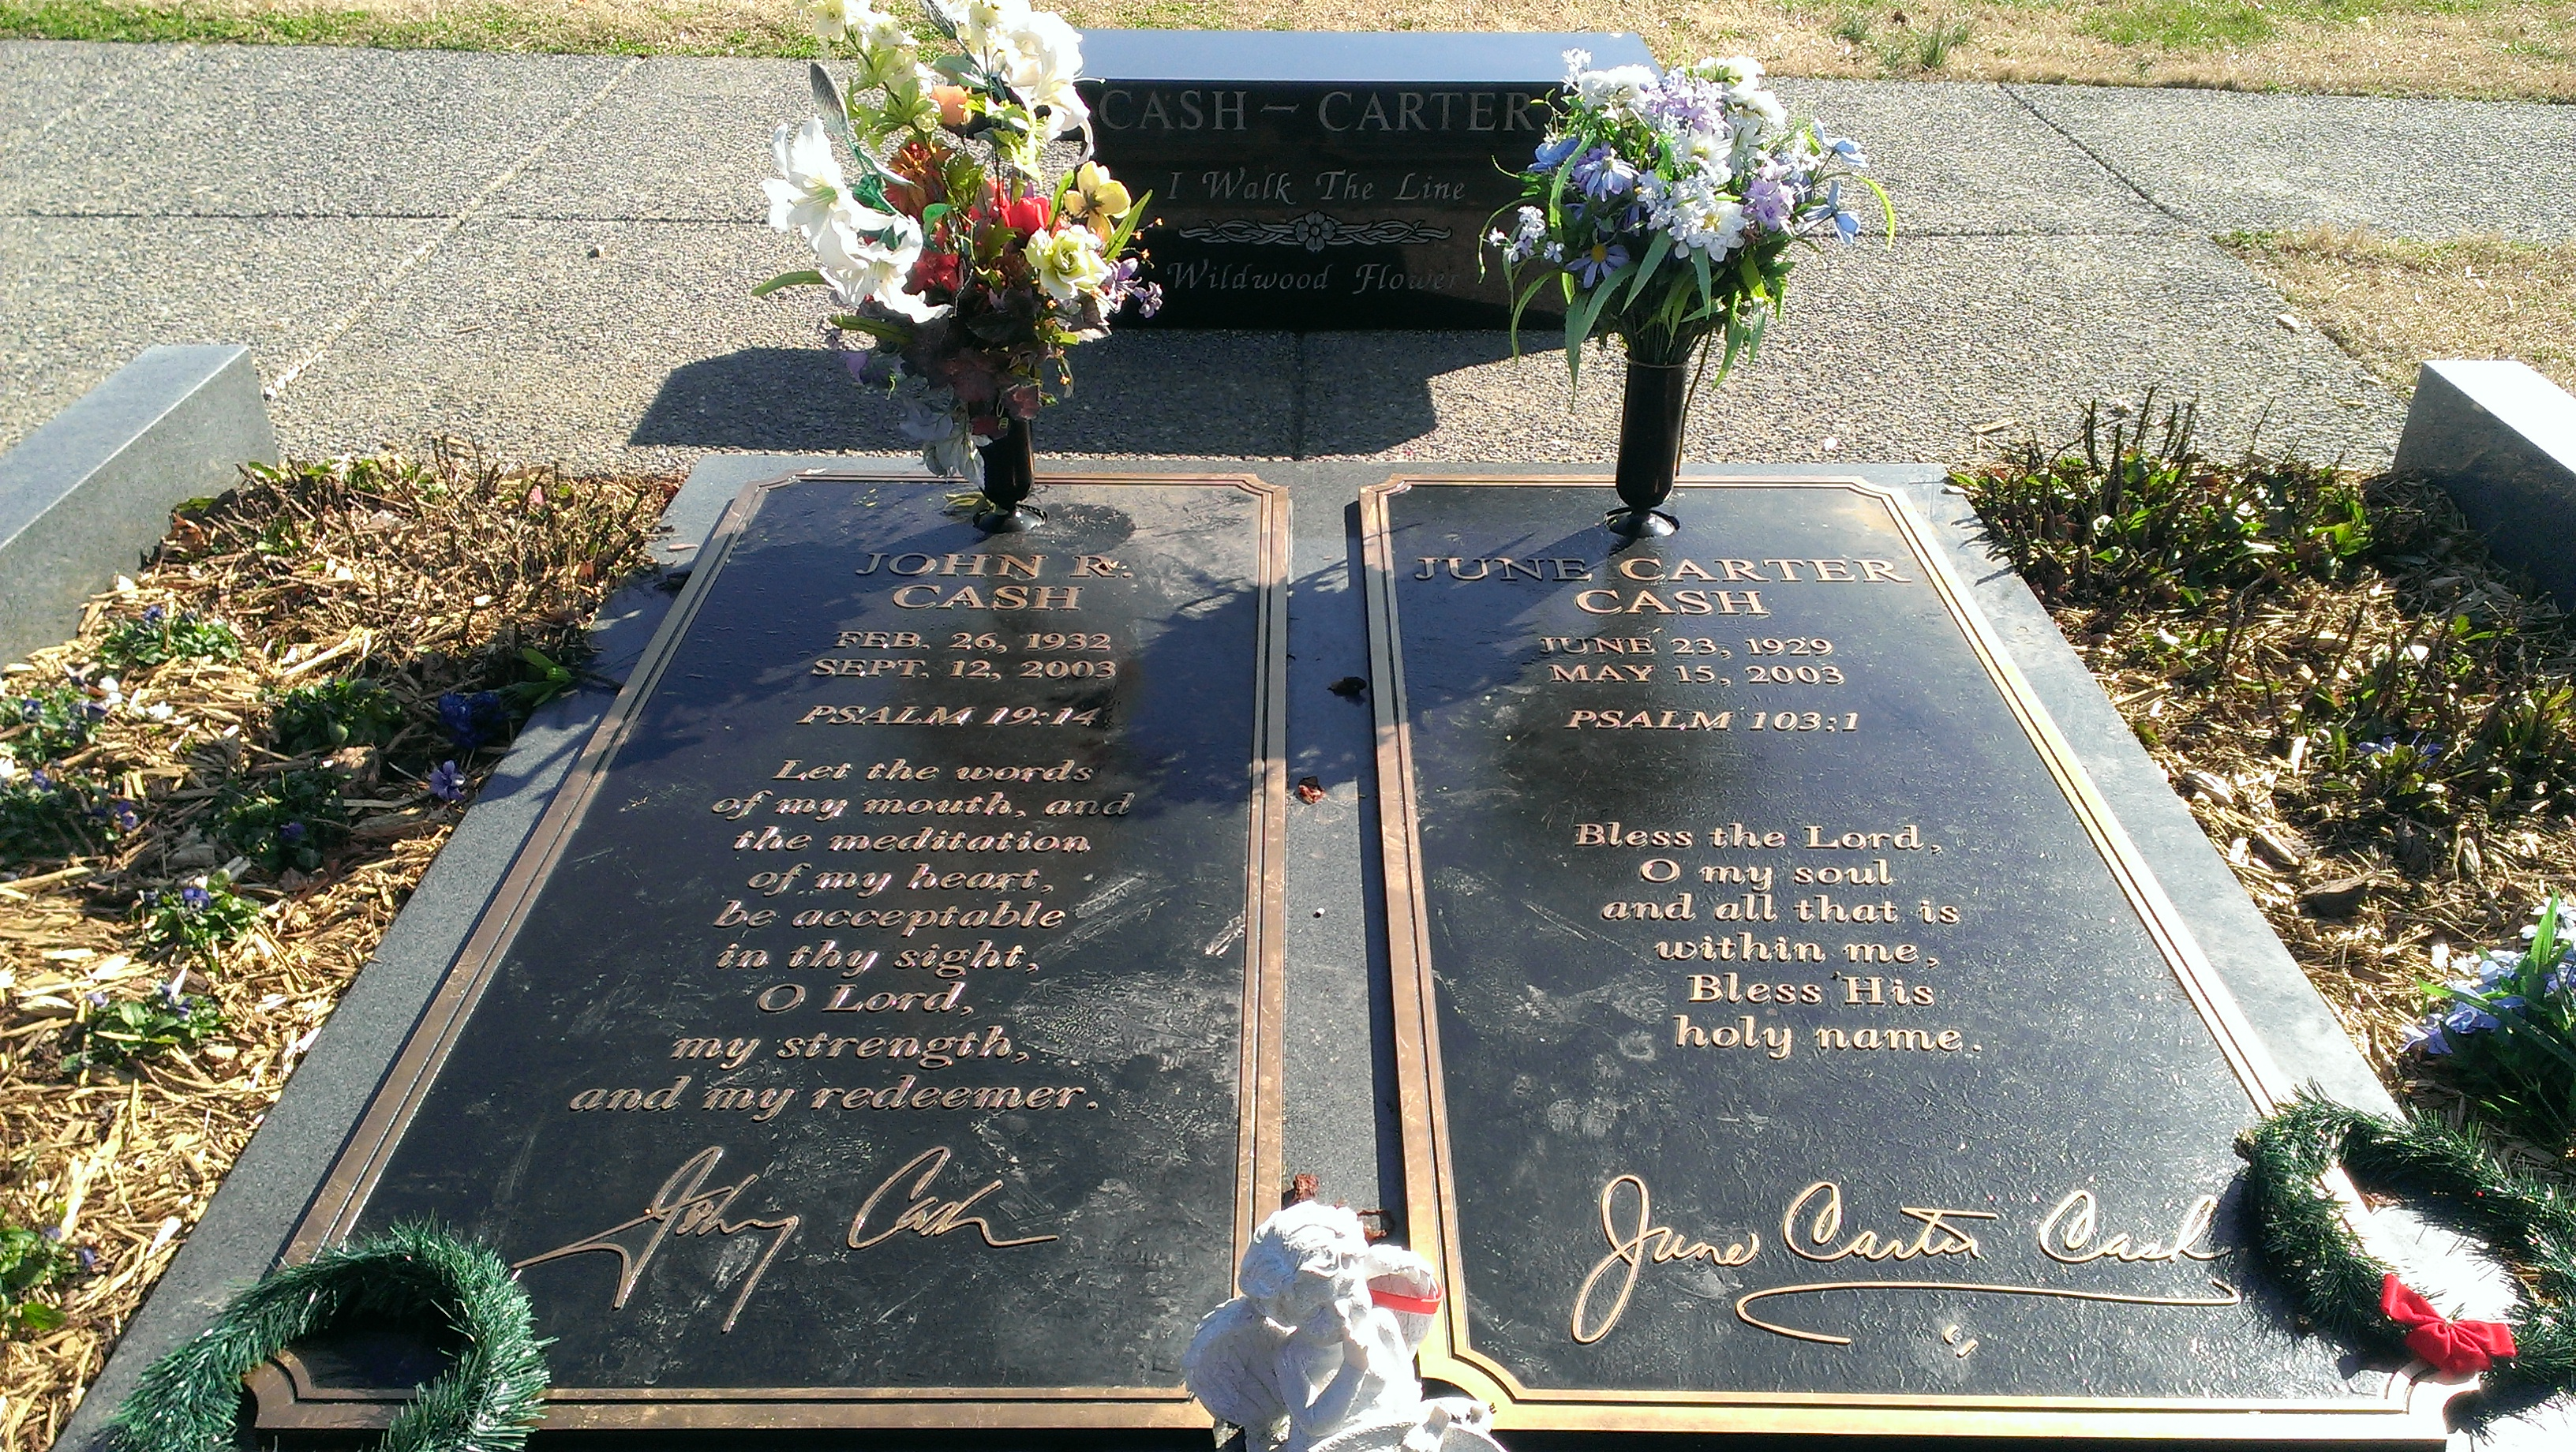 The graves of Johnny Cash and June Carter Cash in Hendersonville, Tennessee. Photo taken on January 23, 2013.